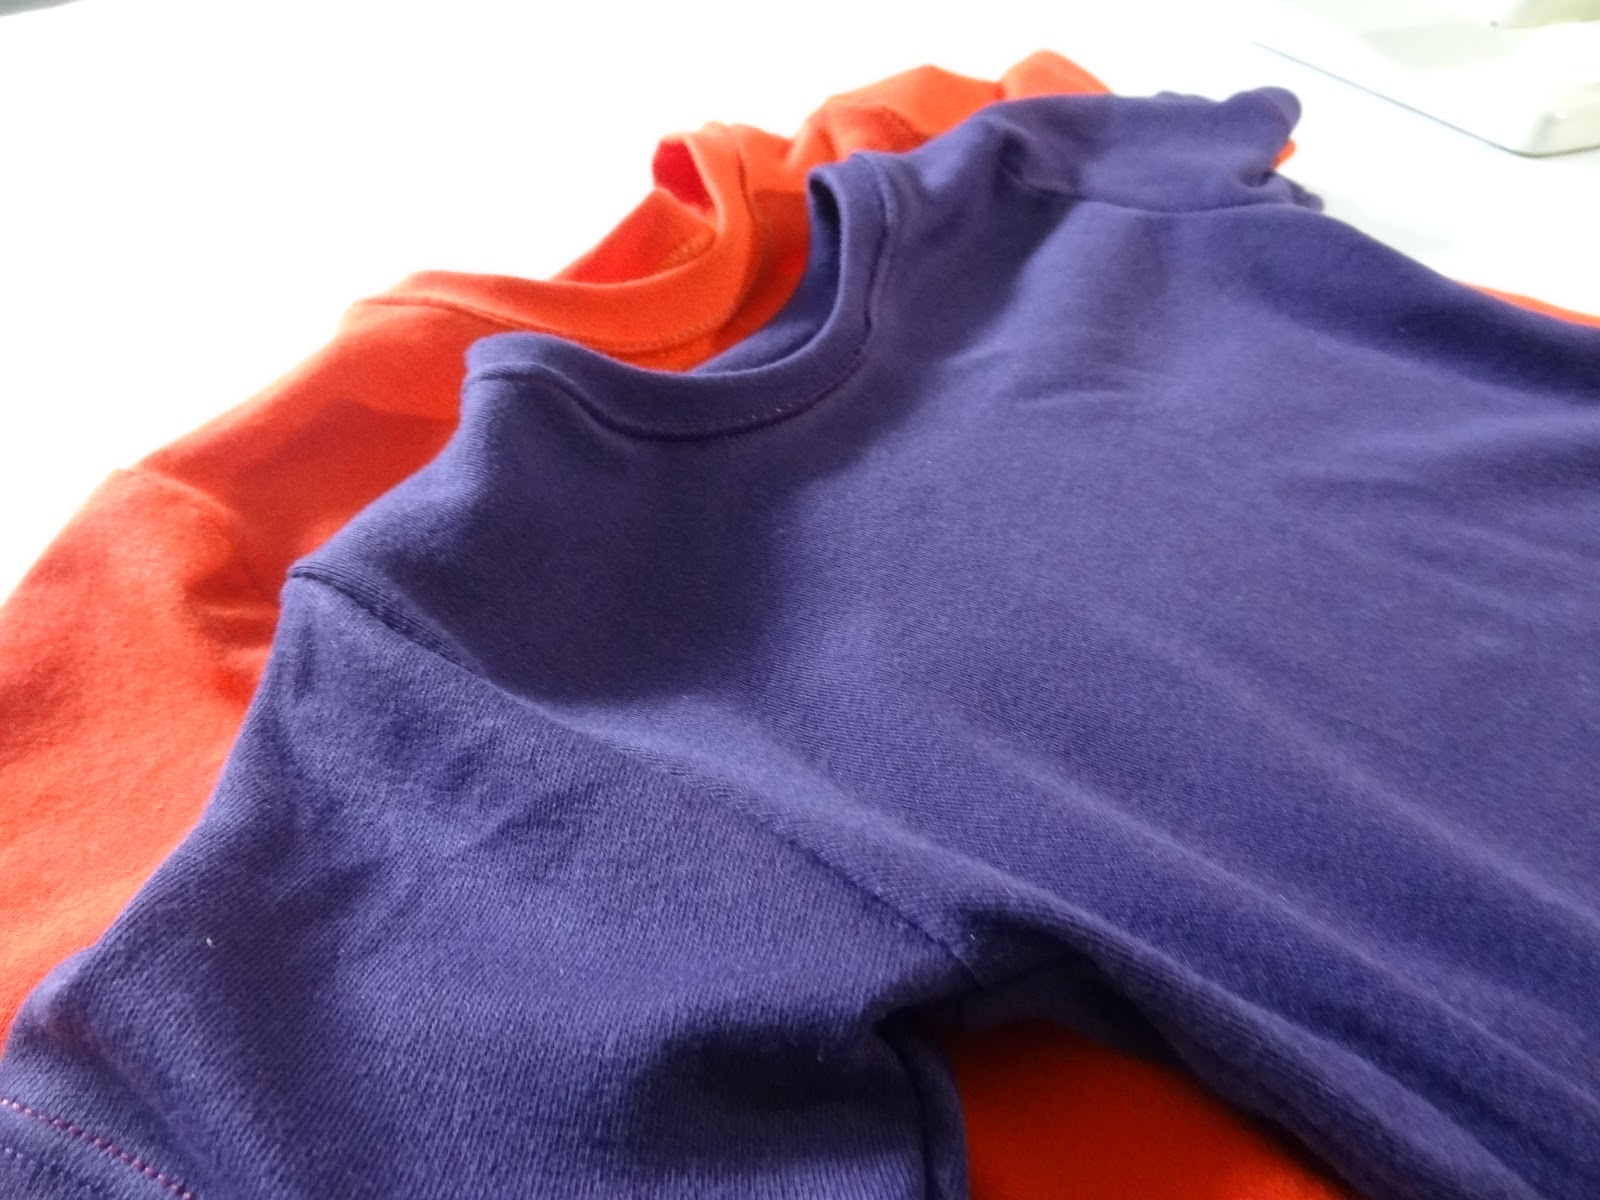 Tutorial: Sewing a t-shirt